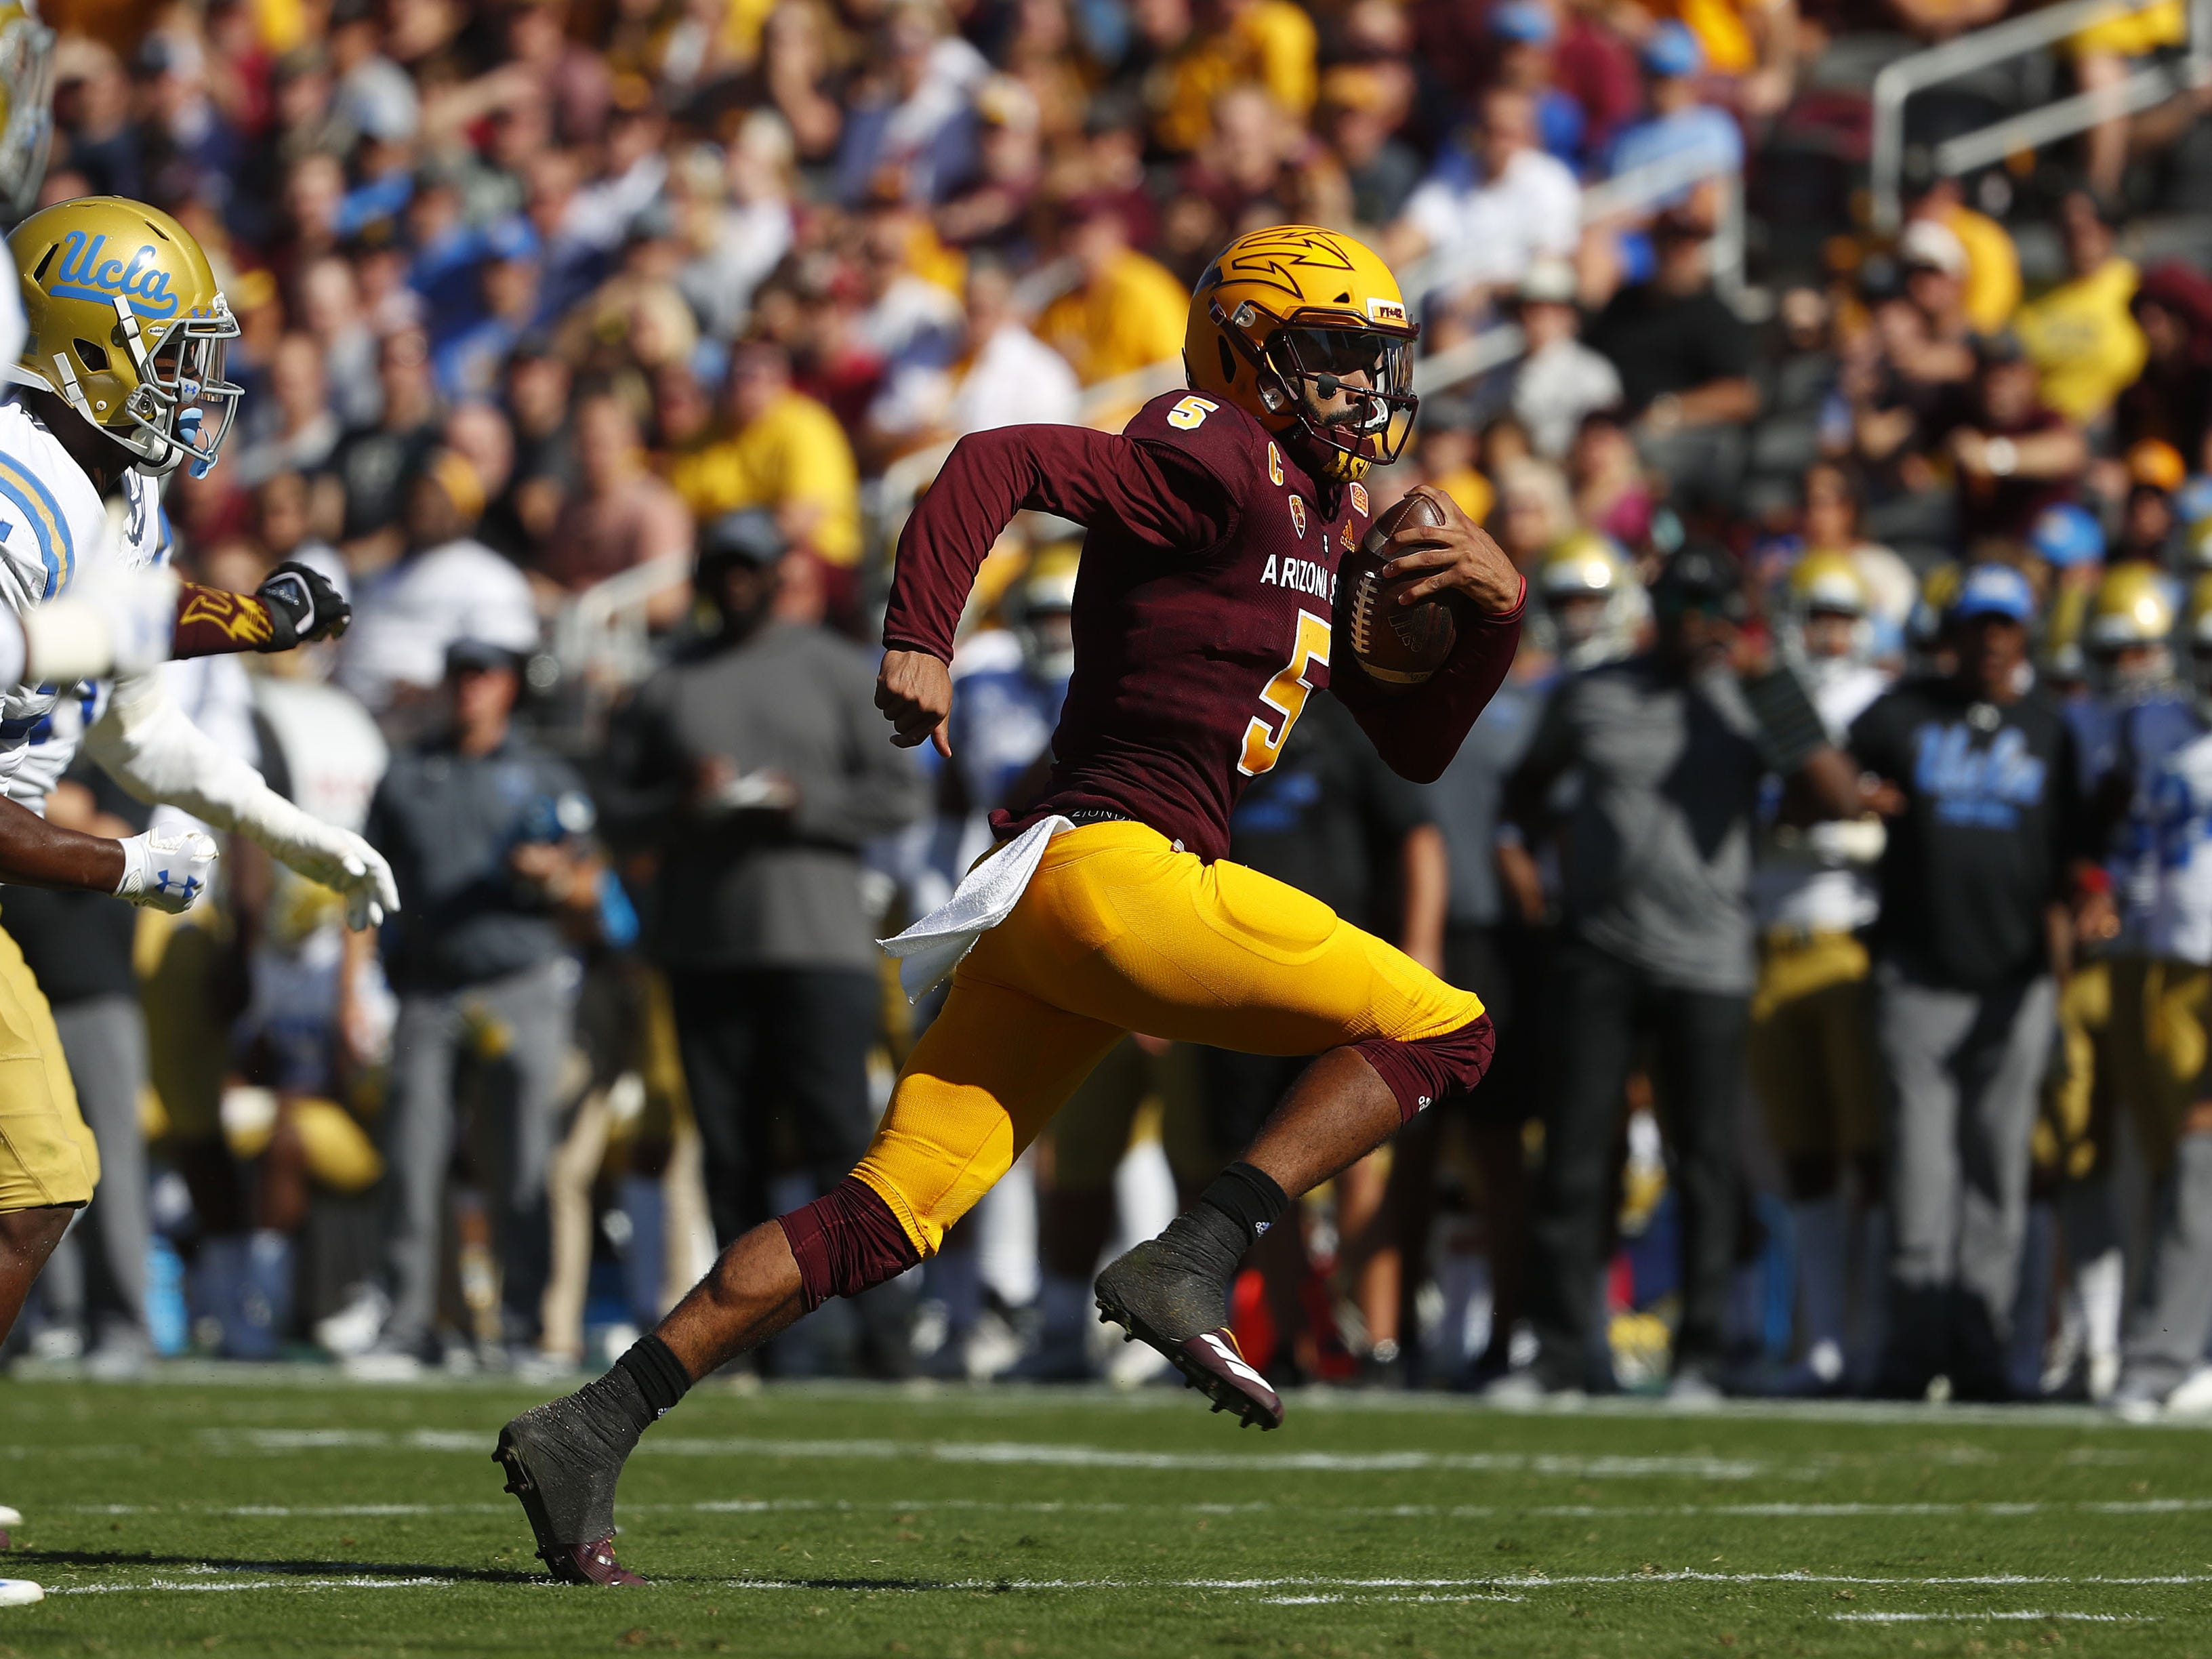 ASU's Manny Wilkins (5) runs for a touchdown against UCLA during the first half at Sun Devil Stadium in Tempe, Ariz. on November 10, 2018.